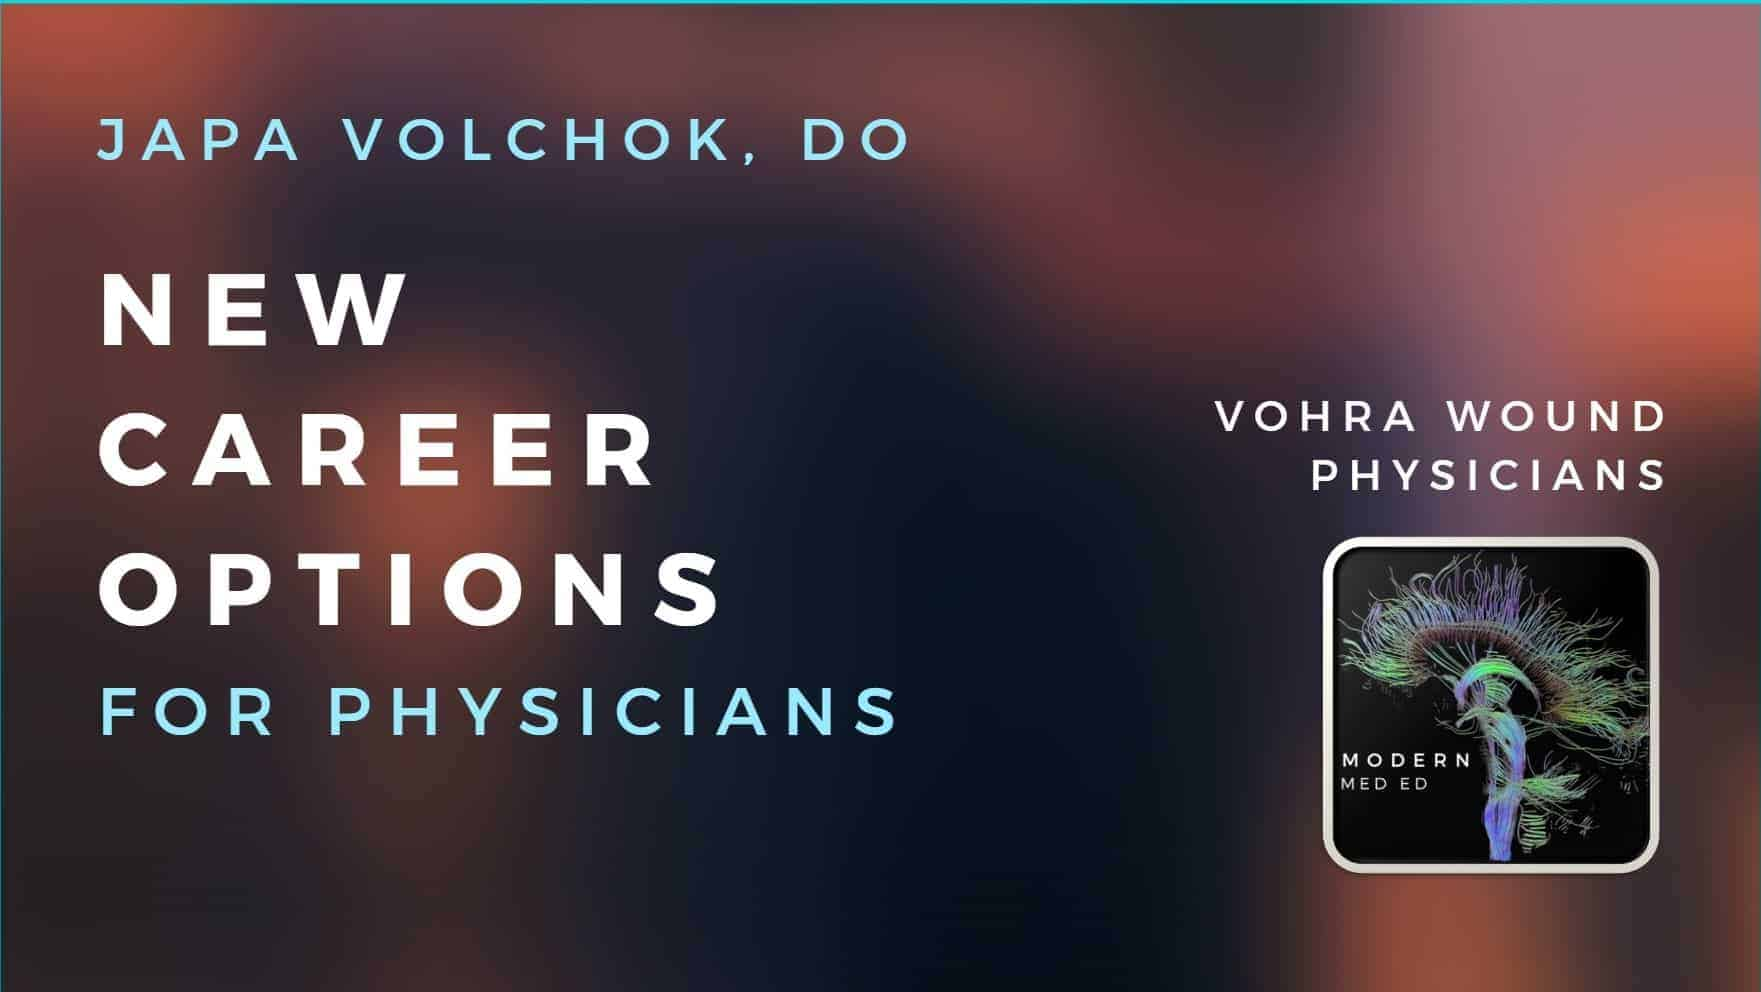 Career Options for Physicians